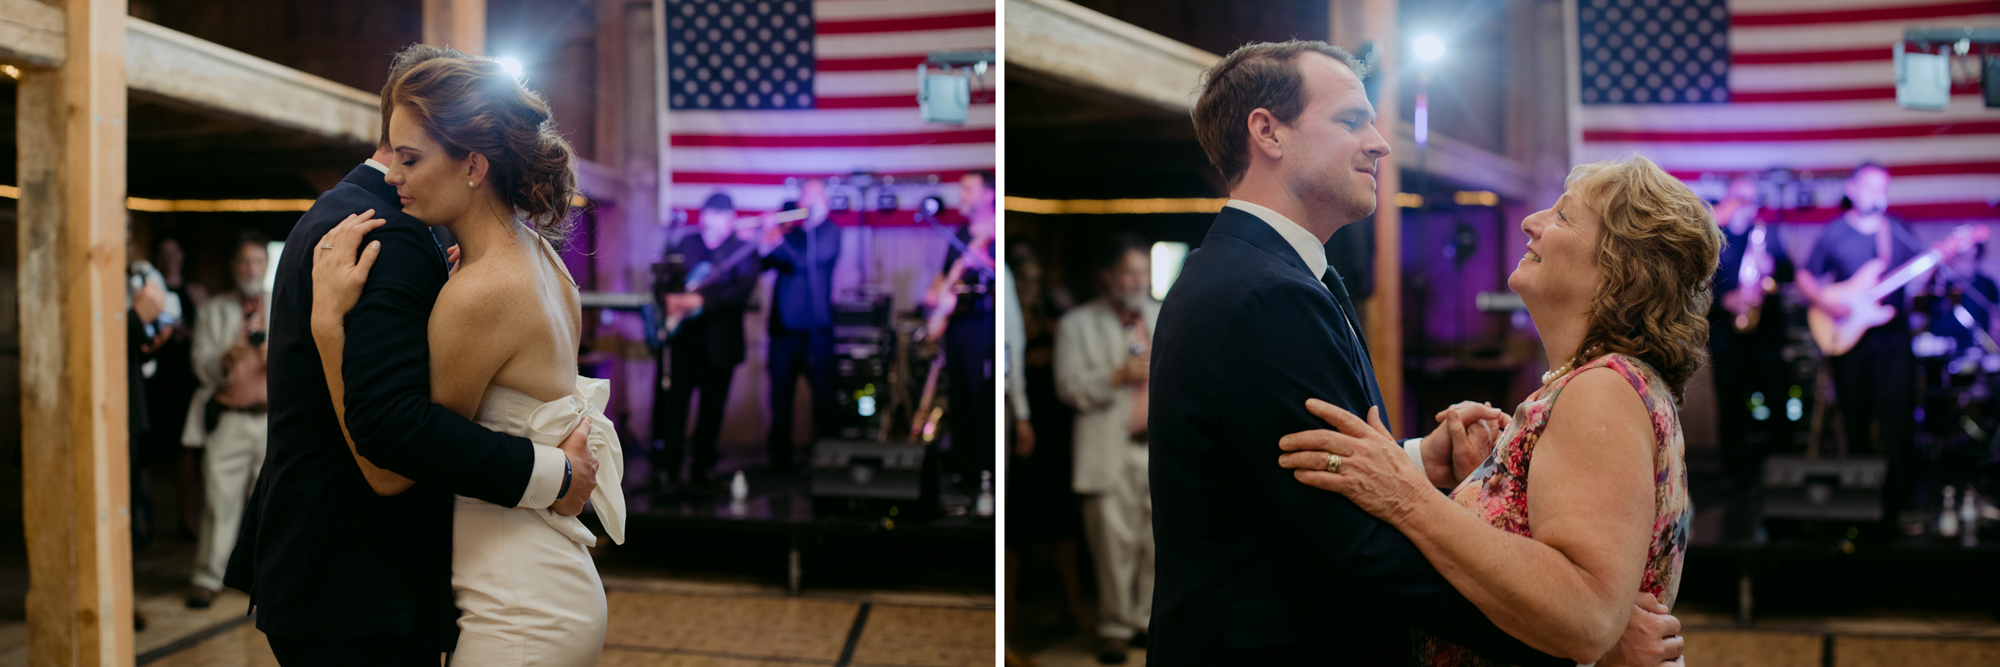 harpswell_maine_wedding_on_a_private_oceanfront_barn_leah_fisher_029.jpg